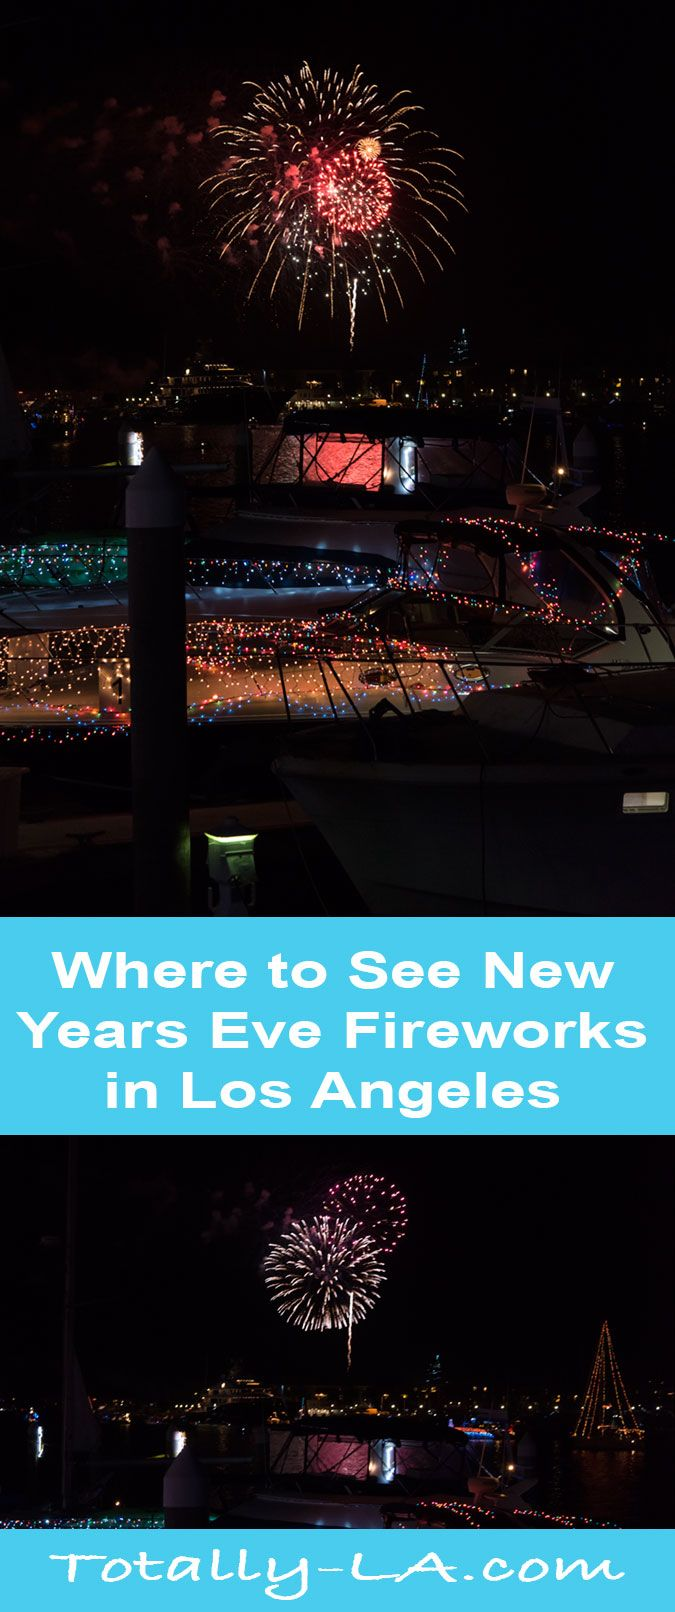 Where New Year S Eve Fireworks Are In La New Years Eve Fireworks New Year Fireworks Fireworks